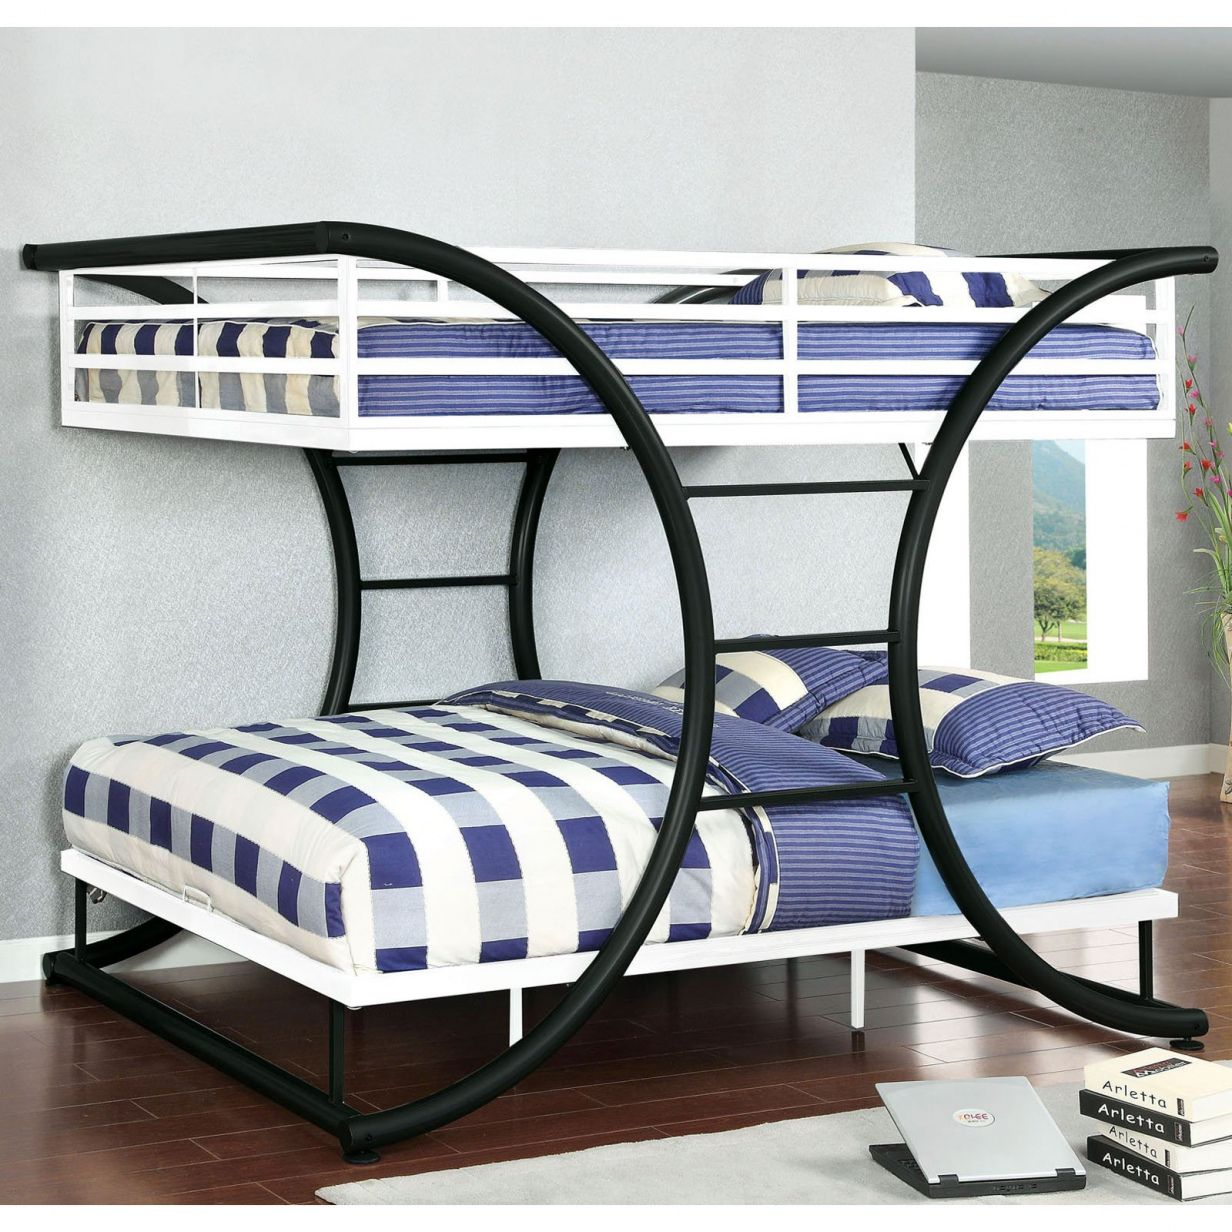 Luxury Full Size Metal Bunk Beds Check more at http://dust-war.com ...